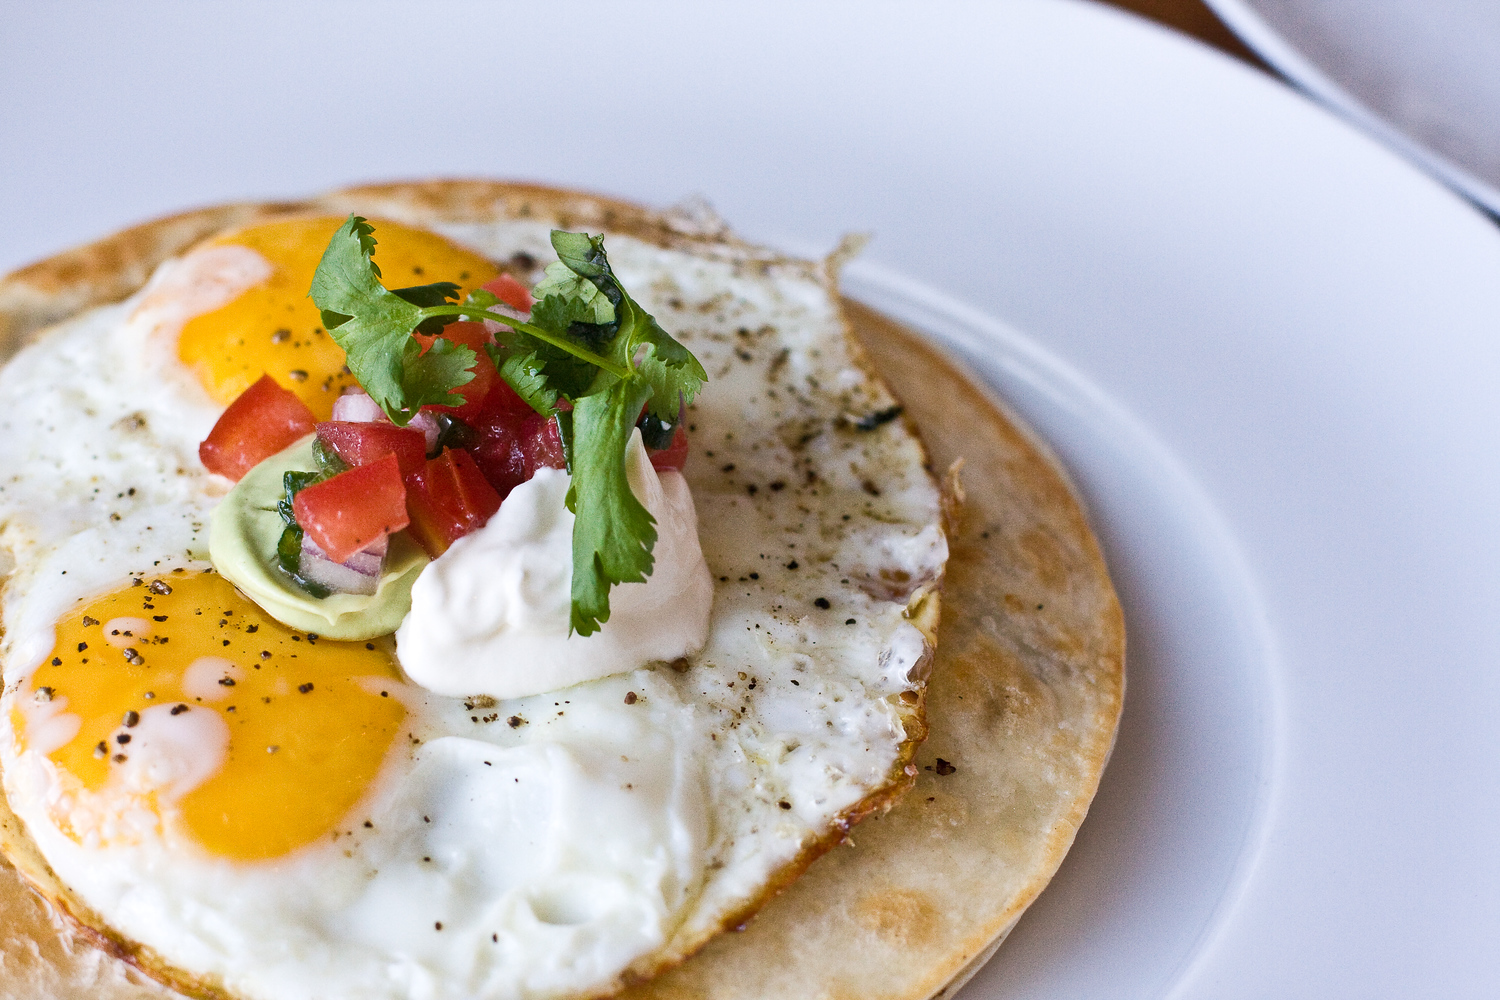 Huevos rancheros is a popular food in Mexico for breakfast.